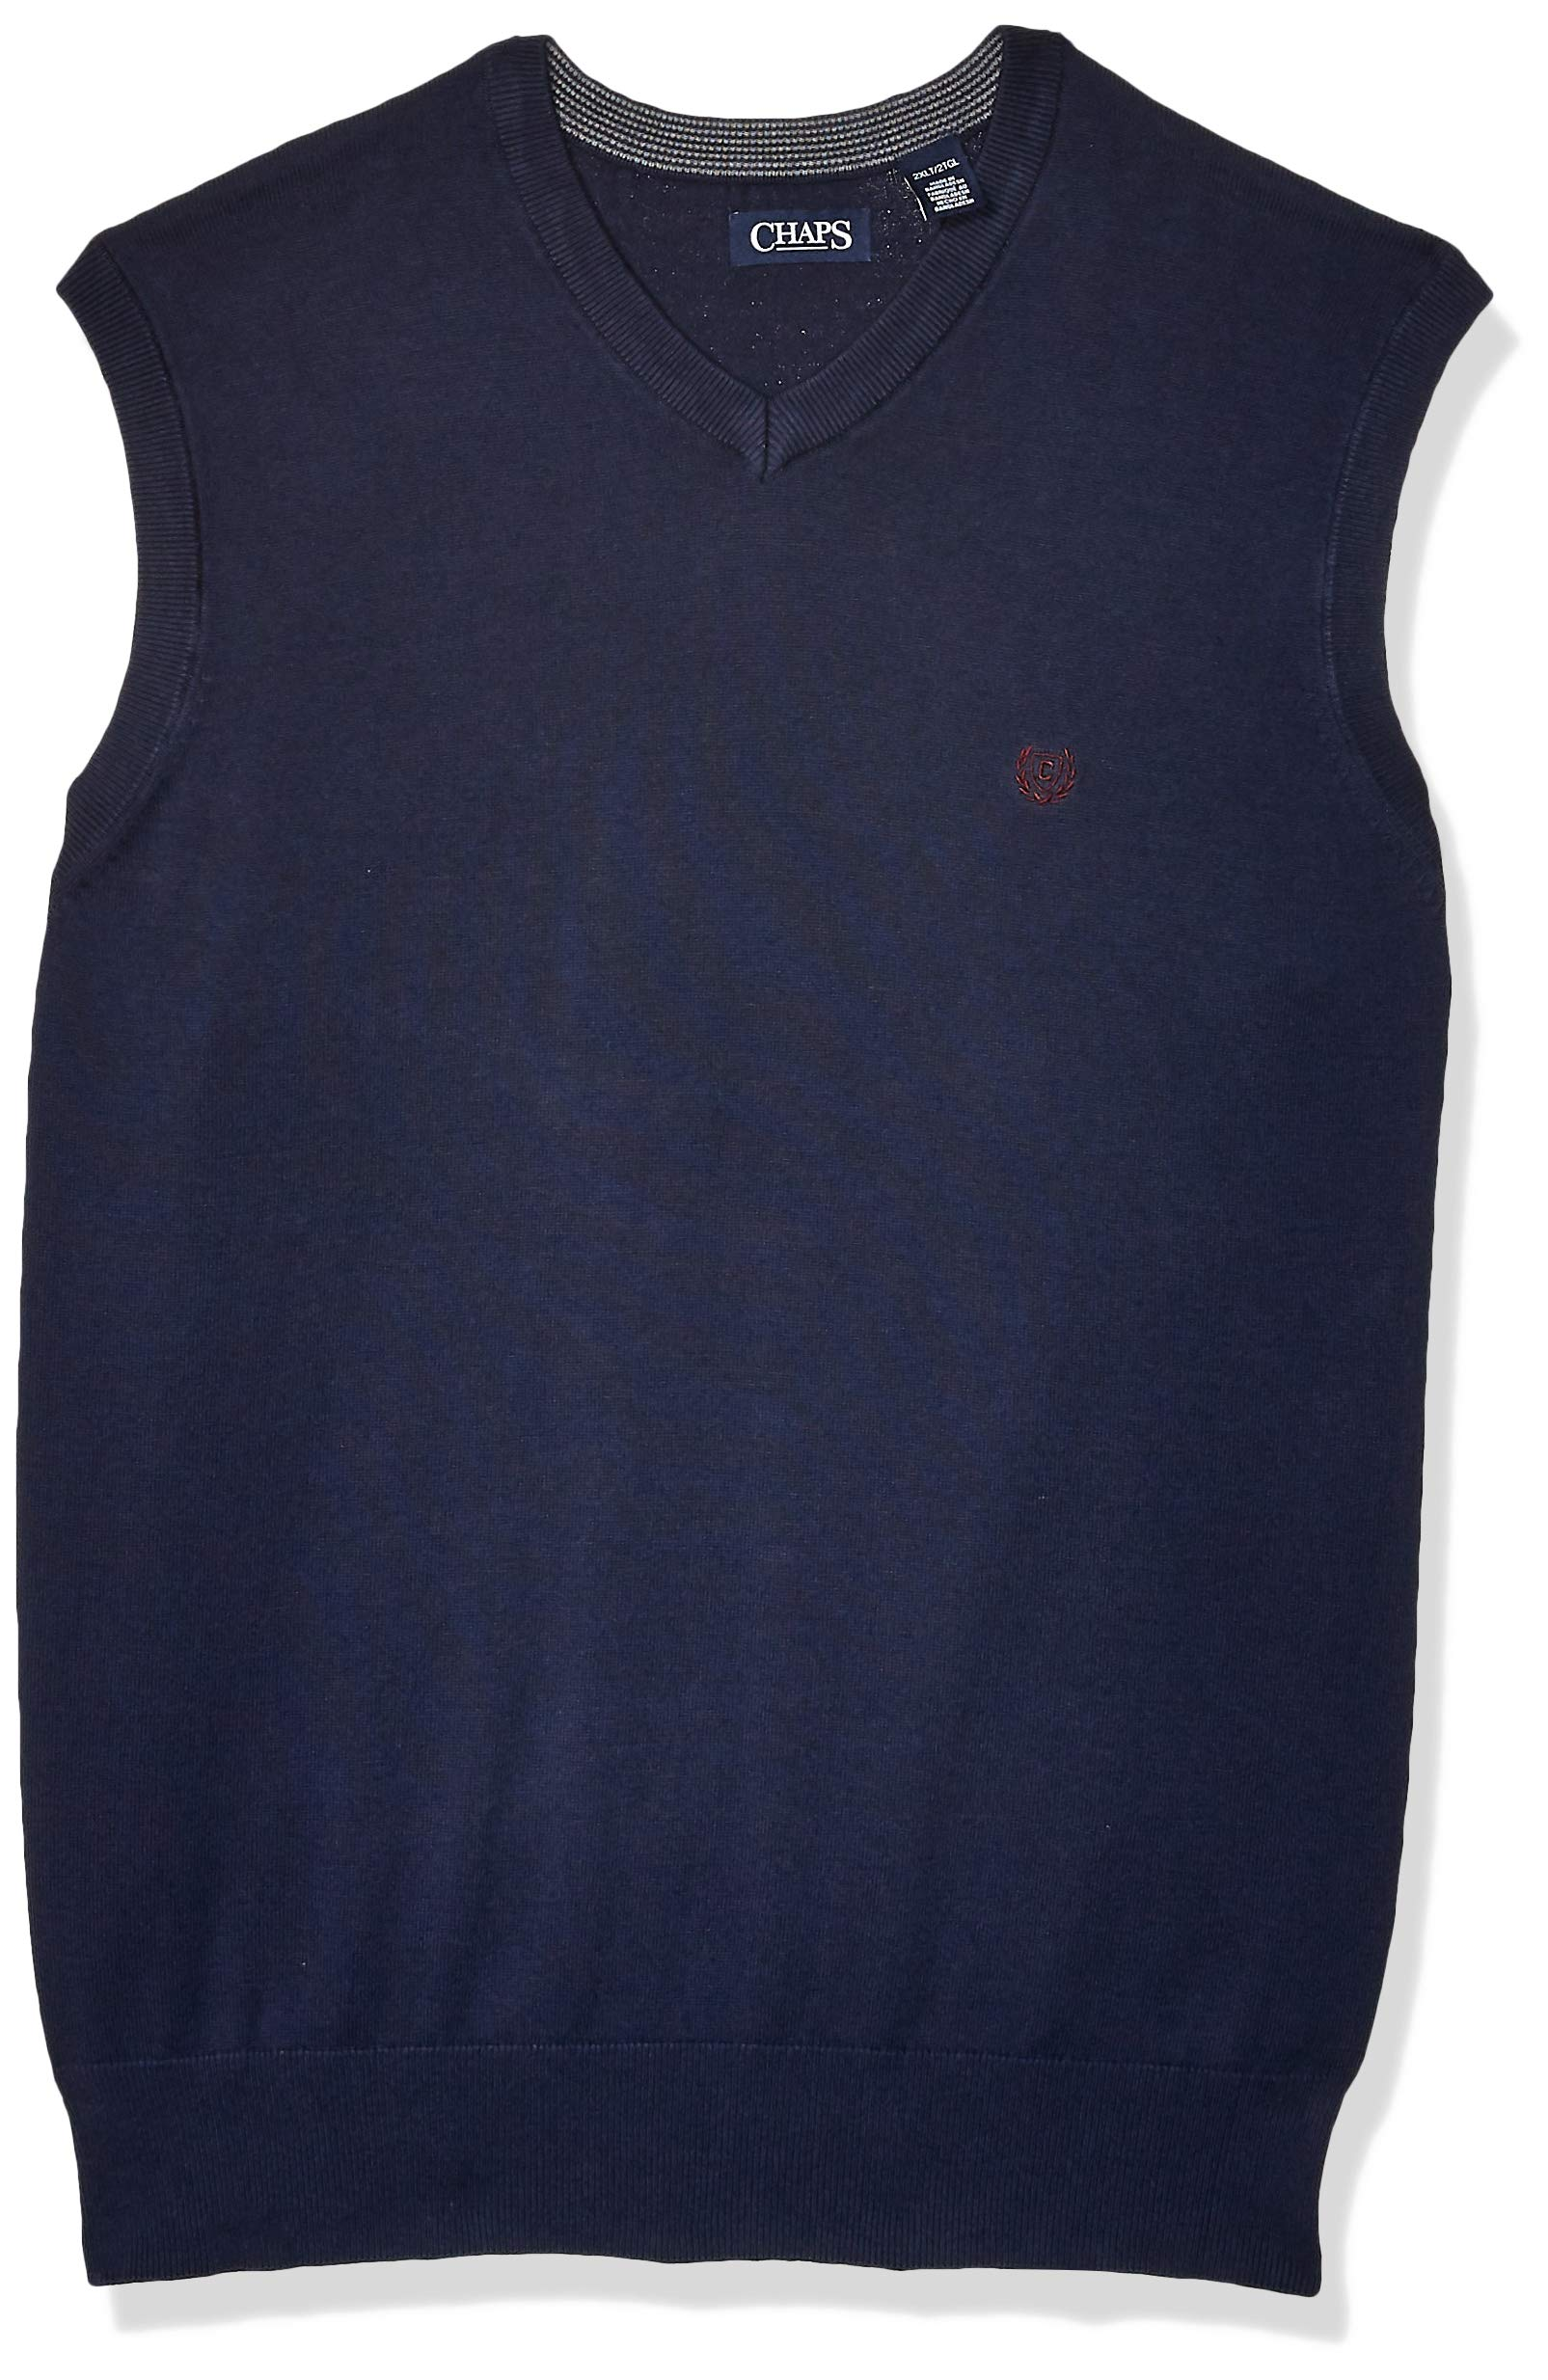 Chaps Men's Big and Tall Cotton V-Neck Sweater Vest, Newport Navy, XLT by Chaps